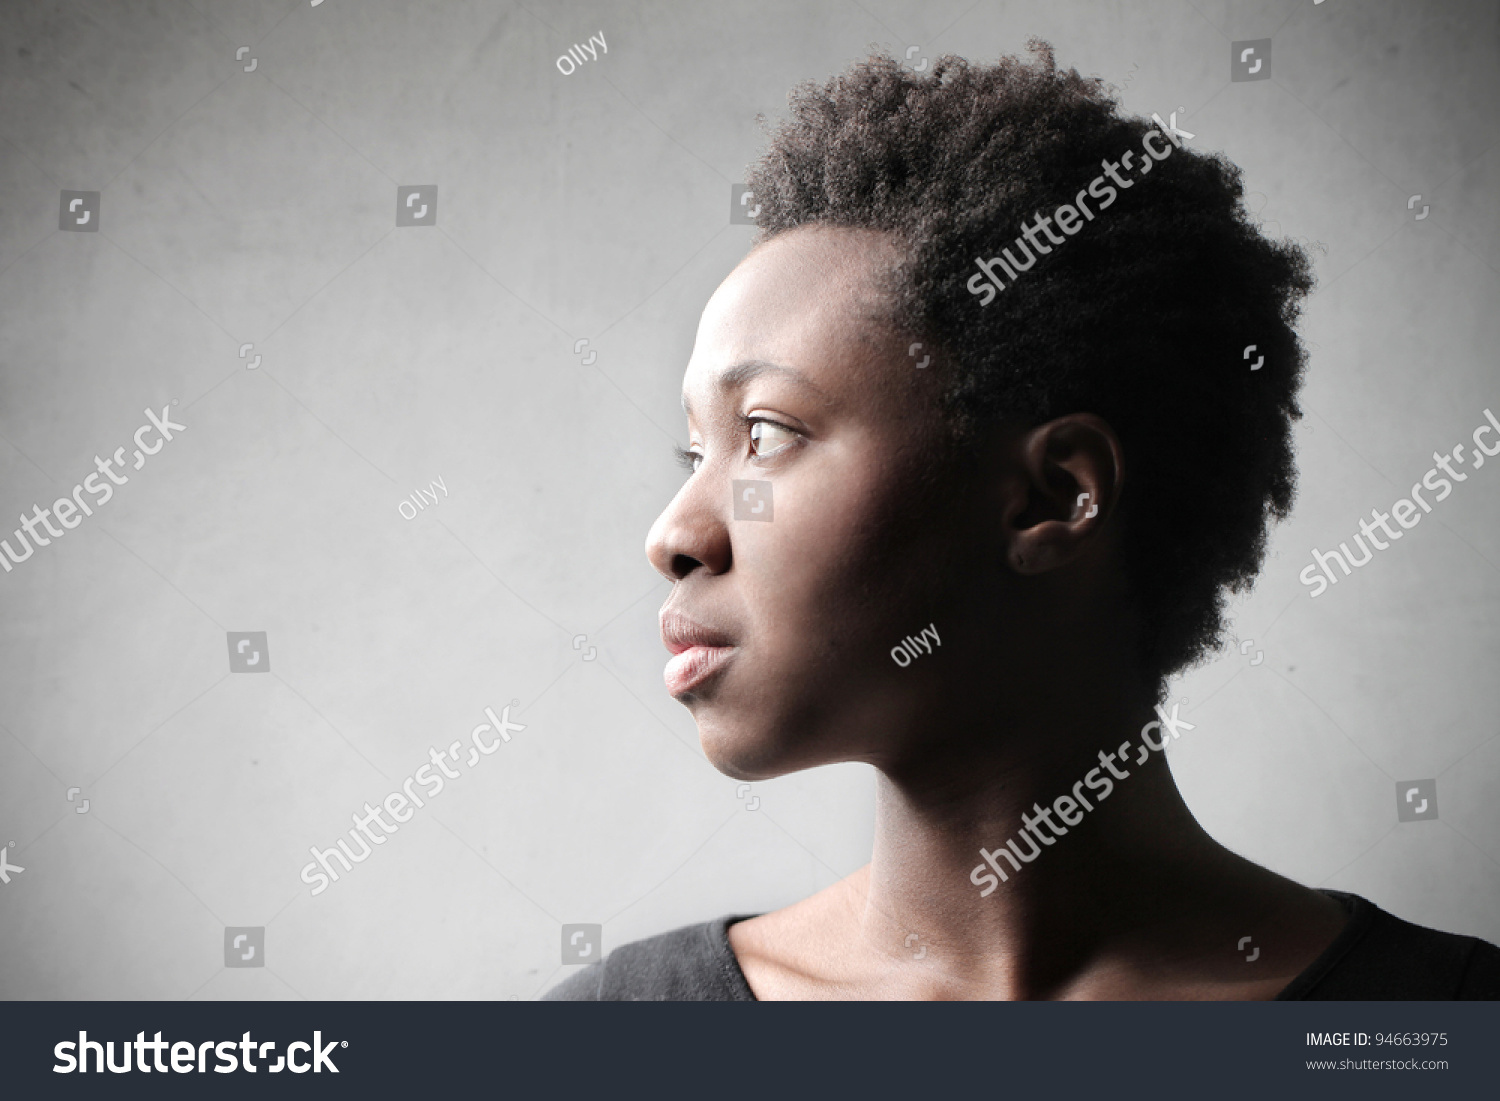 African woman profile